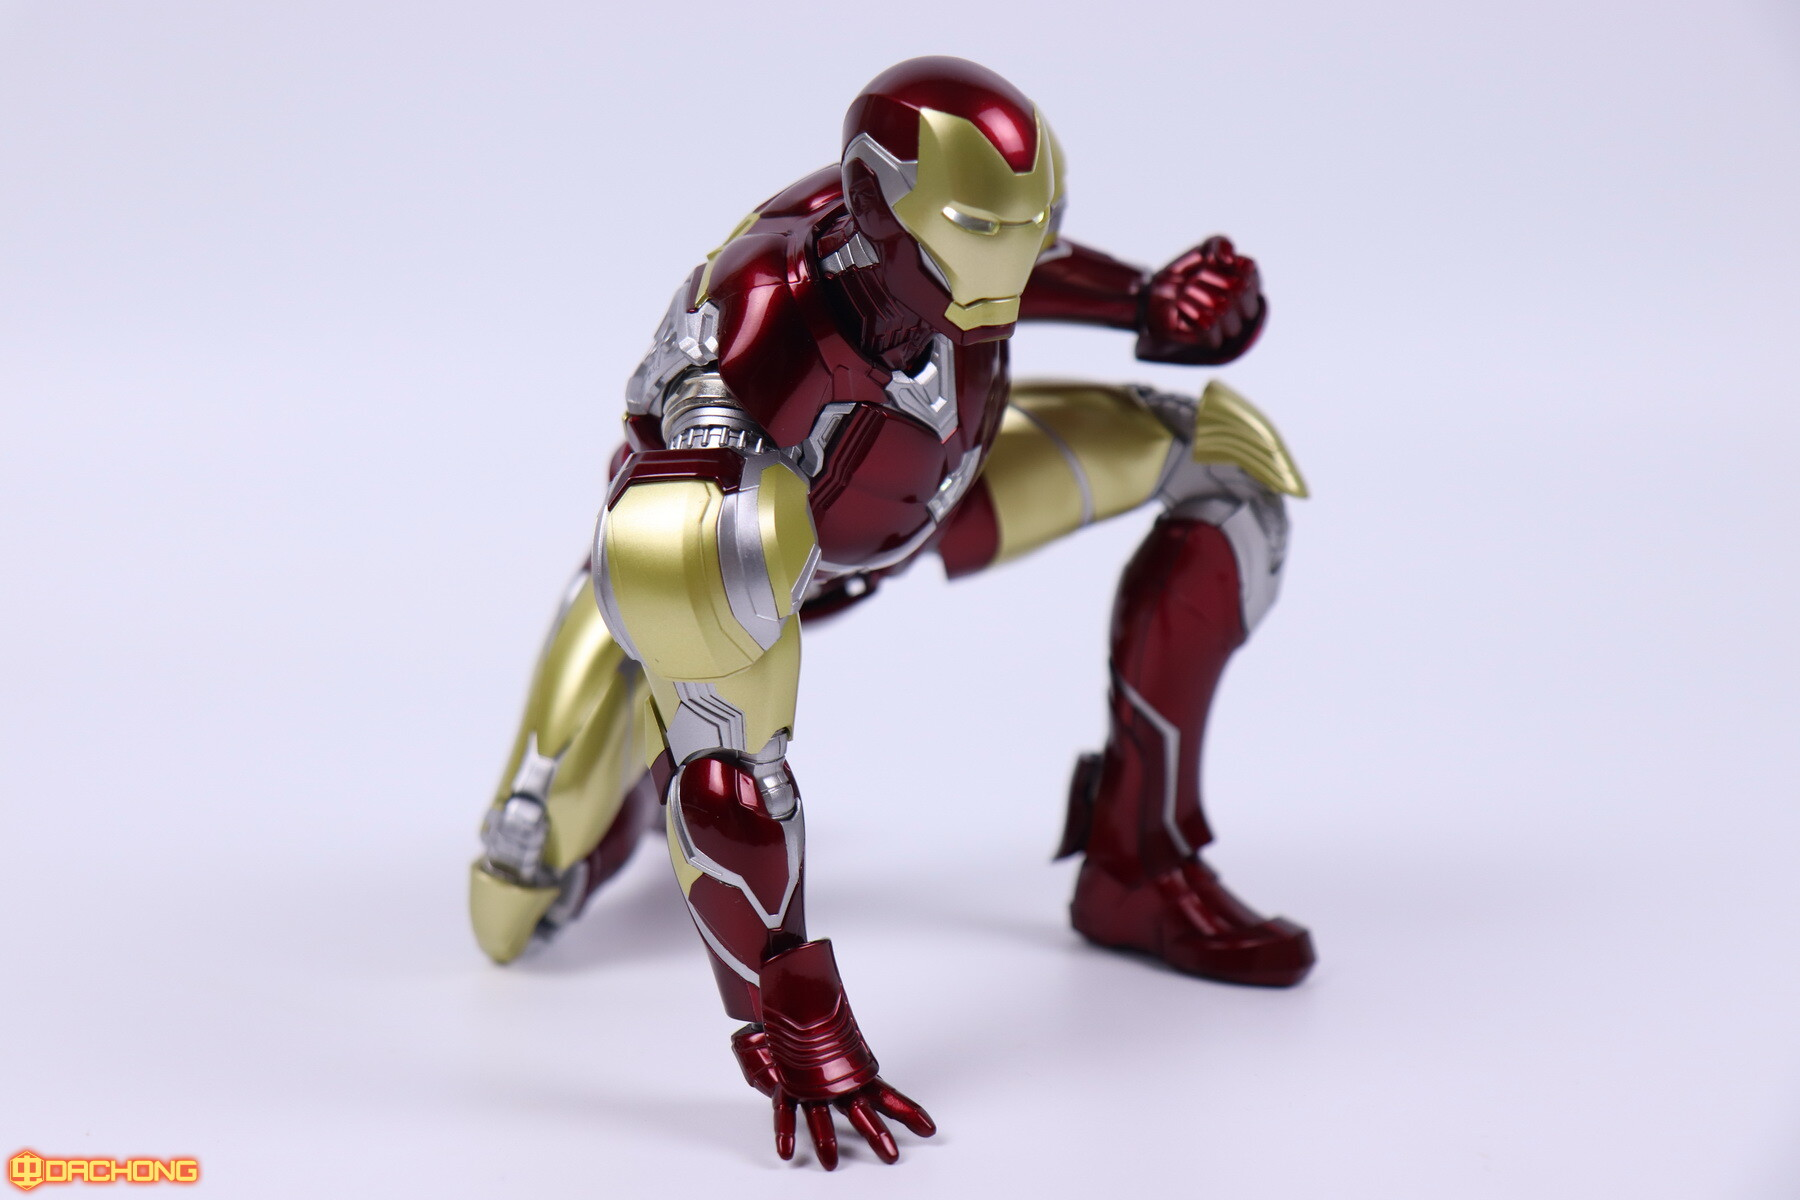 S498_2_e_model_ironman_mk85_dx_101.jpg